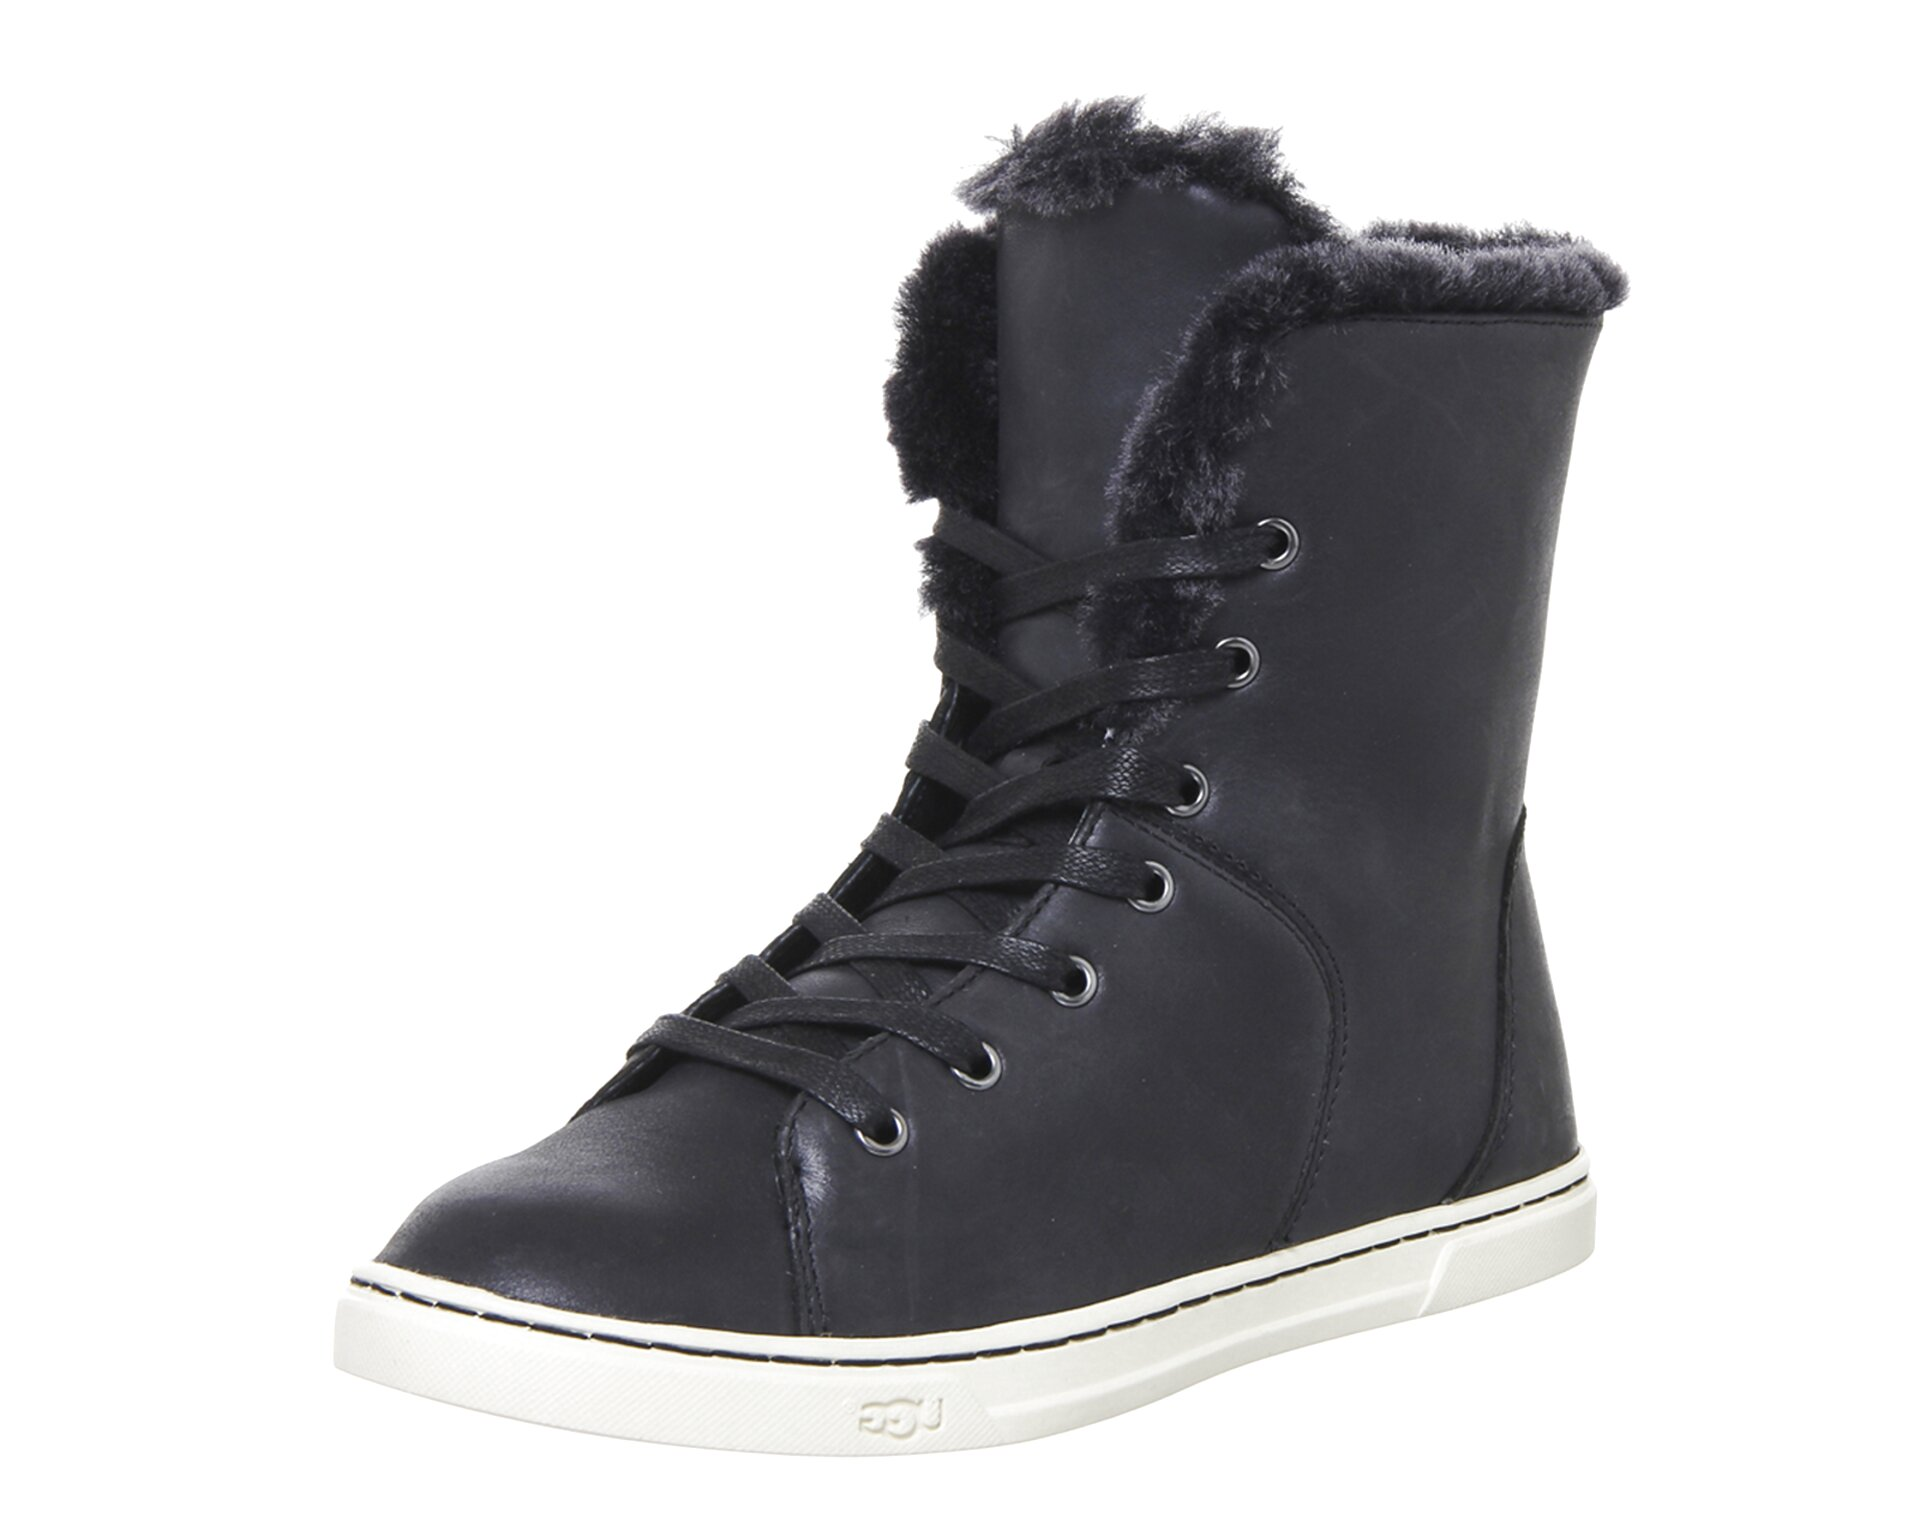 ugg trainer boots for sale